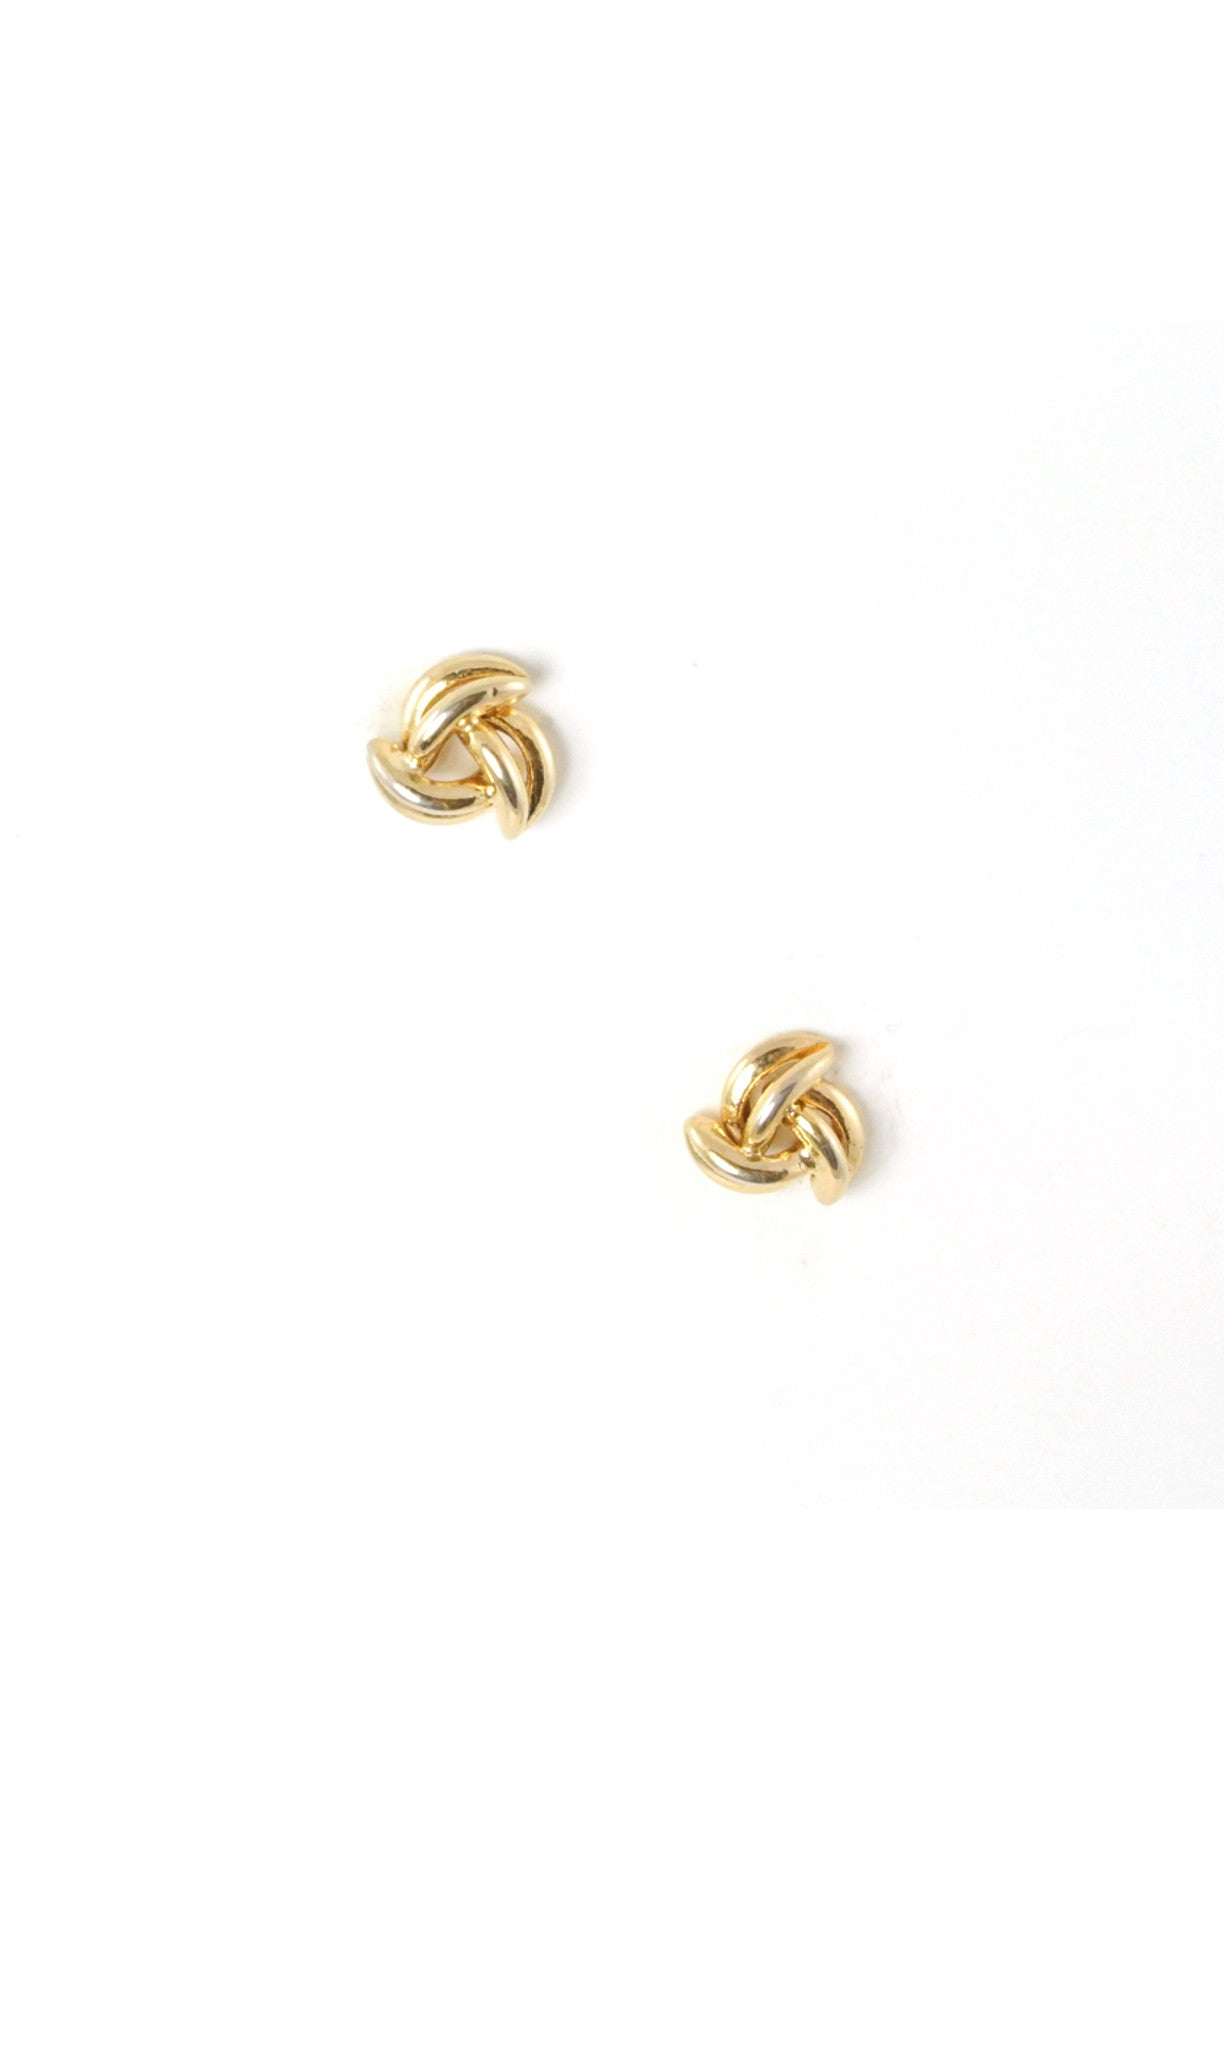 70's__Vintage__Scallop Knot Stud Earrings